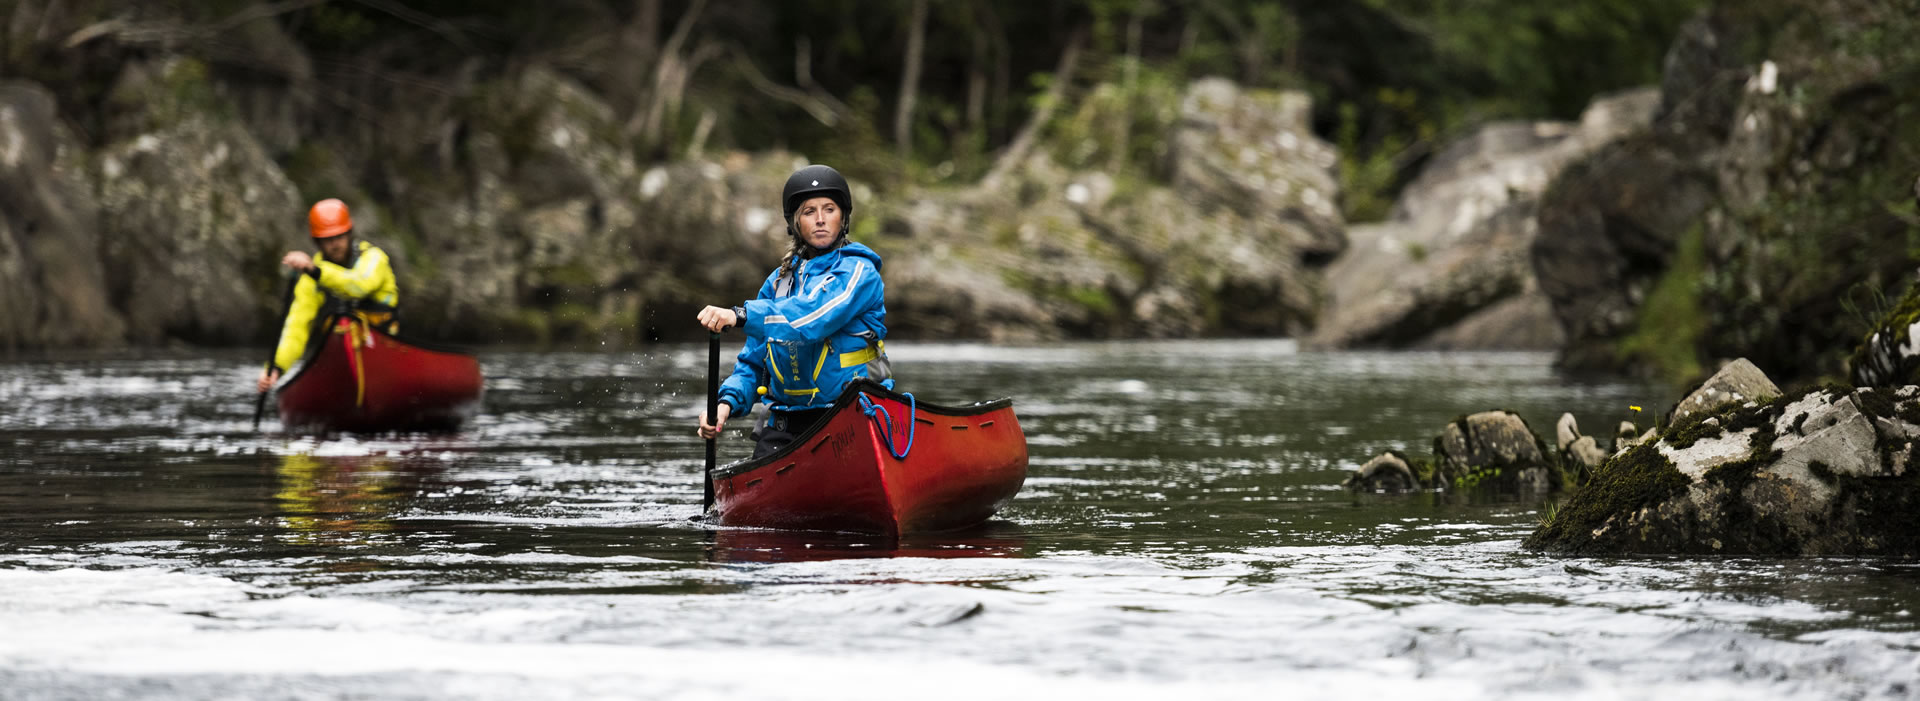 Outdoor Pursuits & Holidays Scotland   Glenmore Lodge   Open